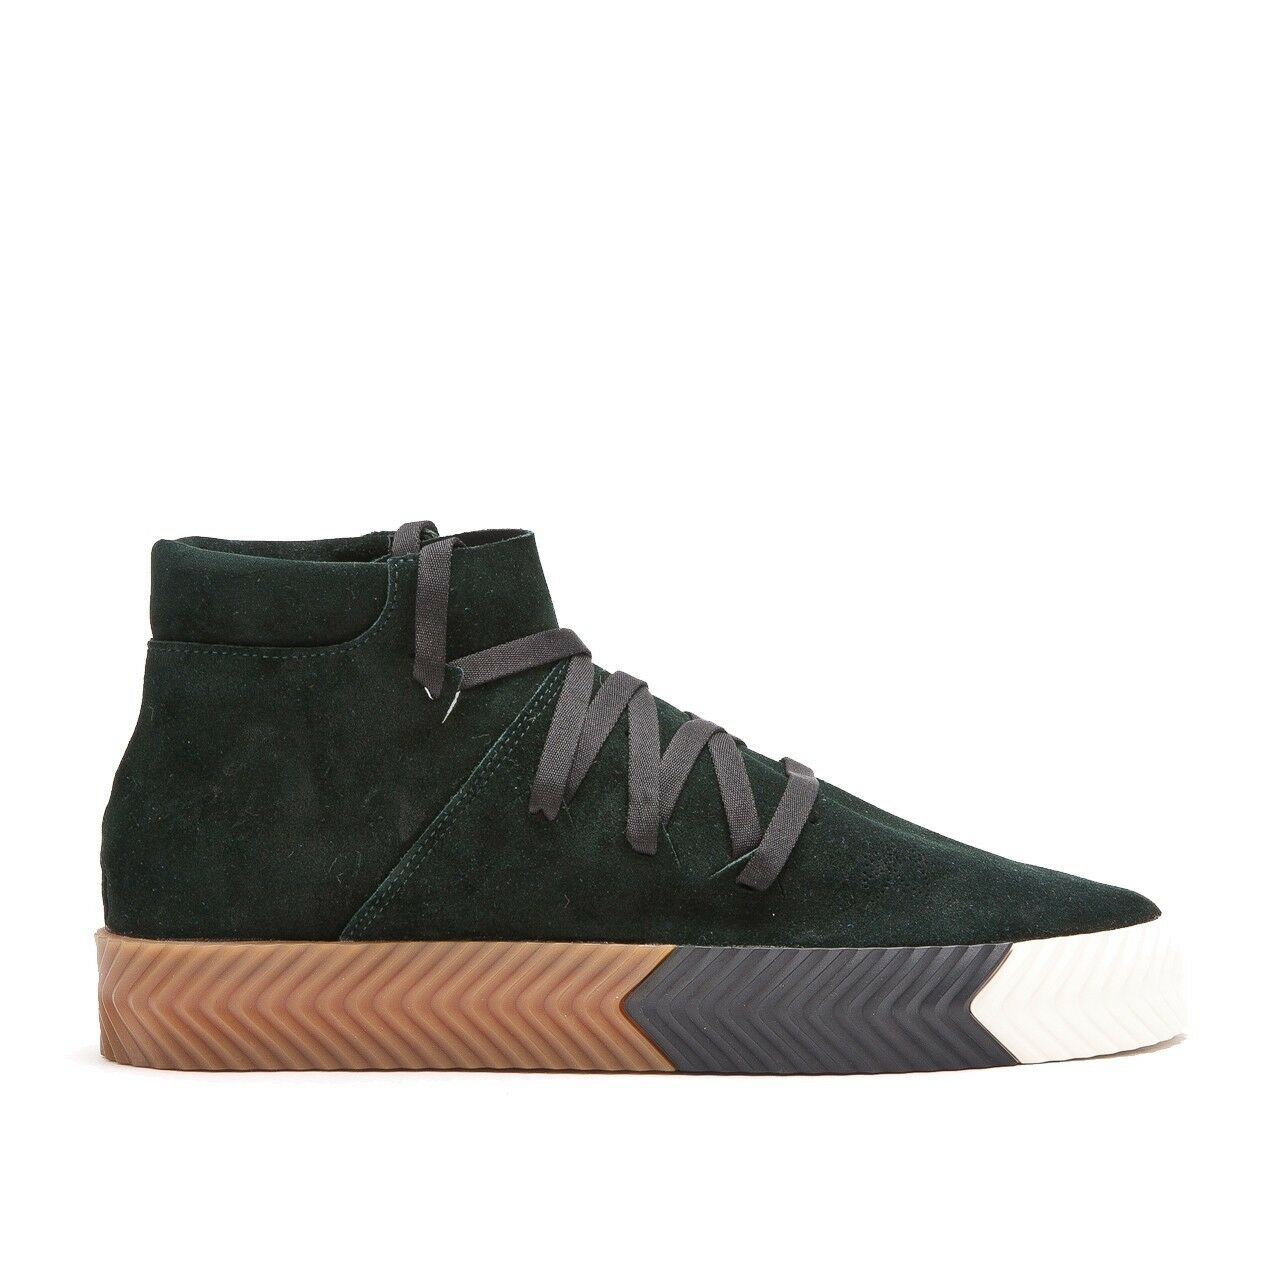 Brand New AW Skate MID Men's Athletic Fashion Sneakers [AC6851]